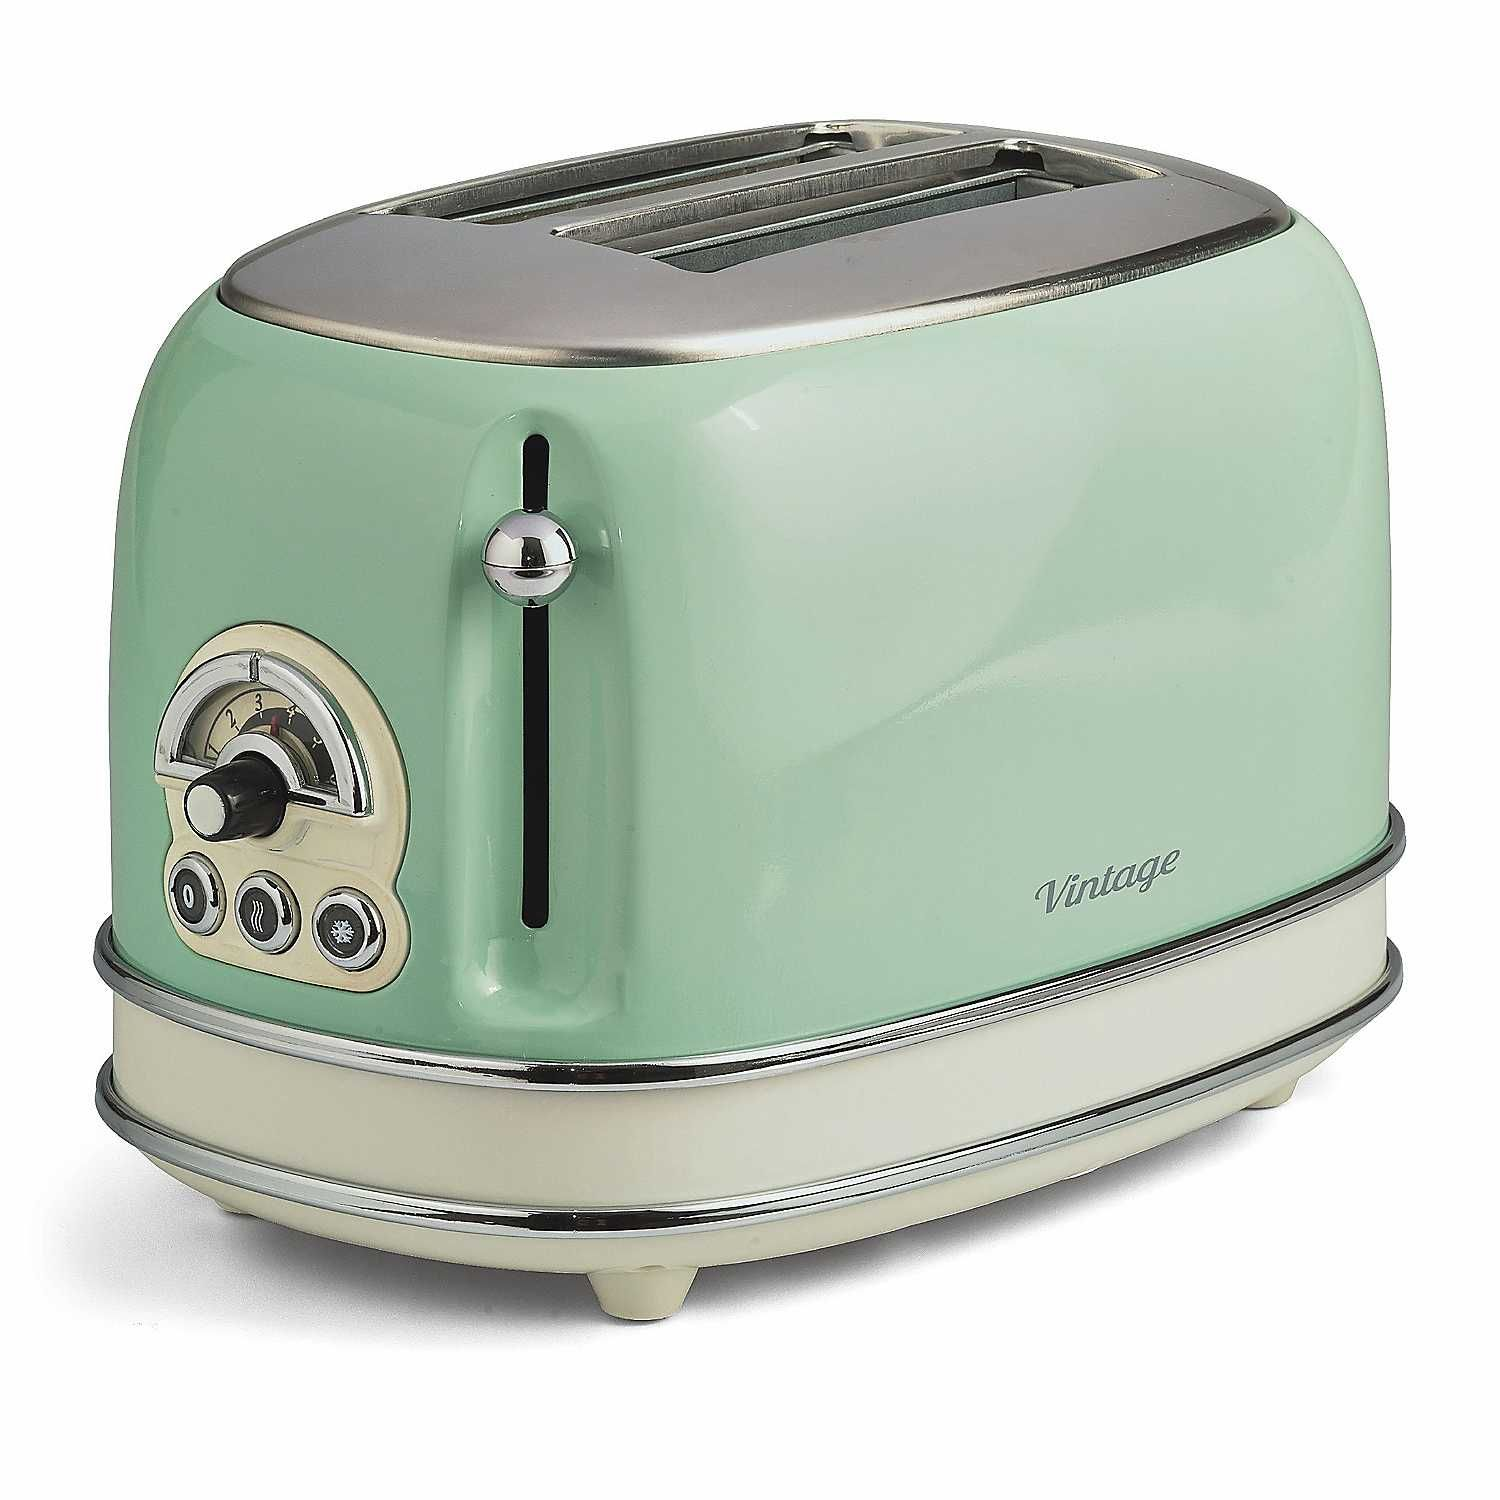 Ariete Vintage Style Toaster Homeappliancesvintage Vintage Toaster Retro Kitchen Appliances Retro Toaster